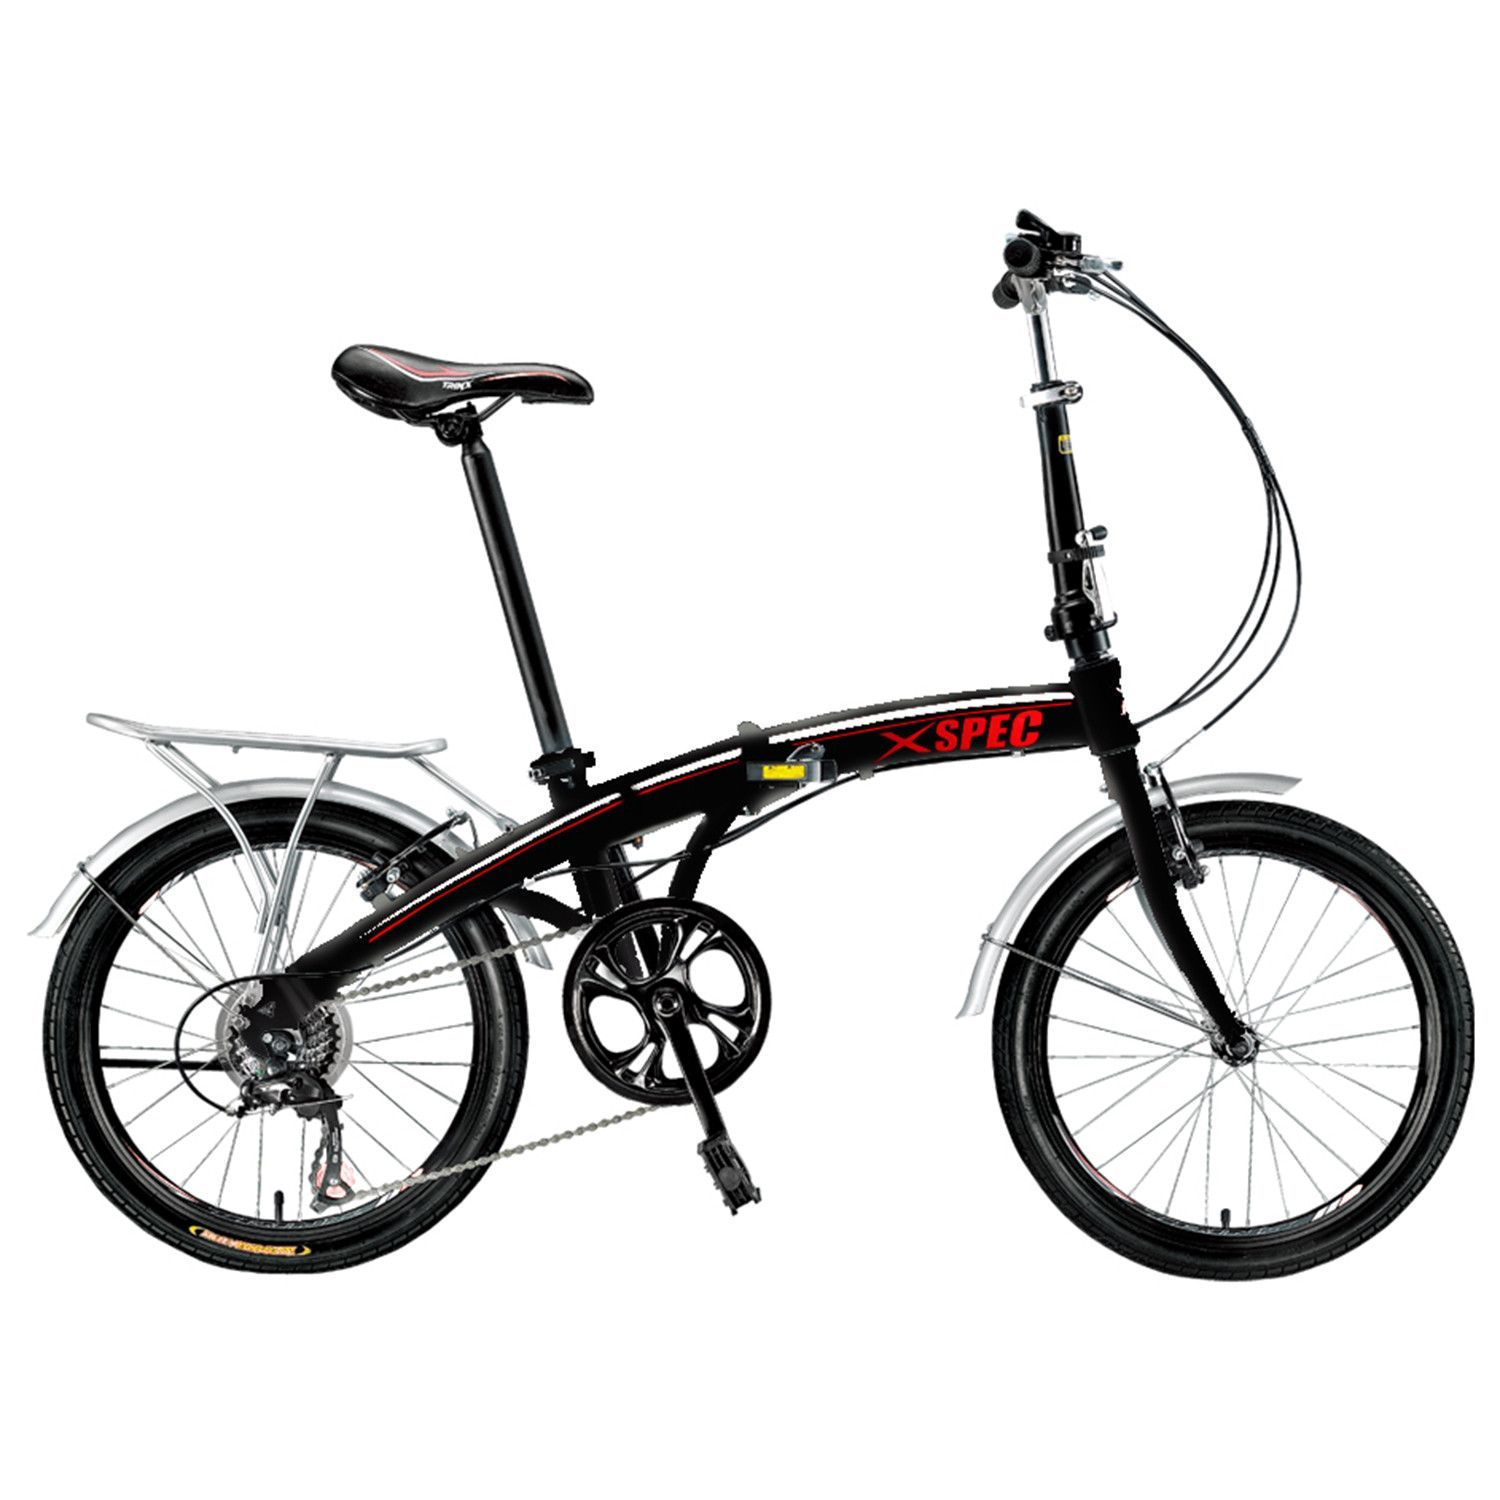 Xspec 20 With Images Urban Commuter Bicycle Bike Kids Bike